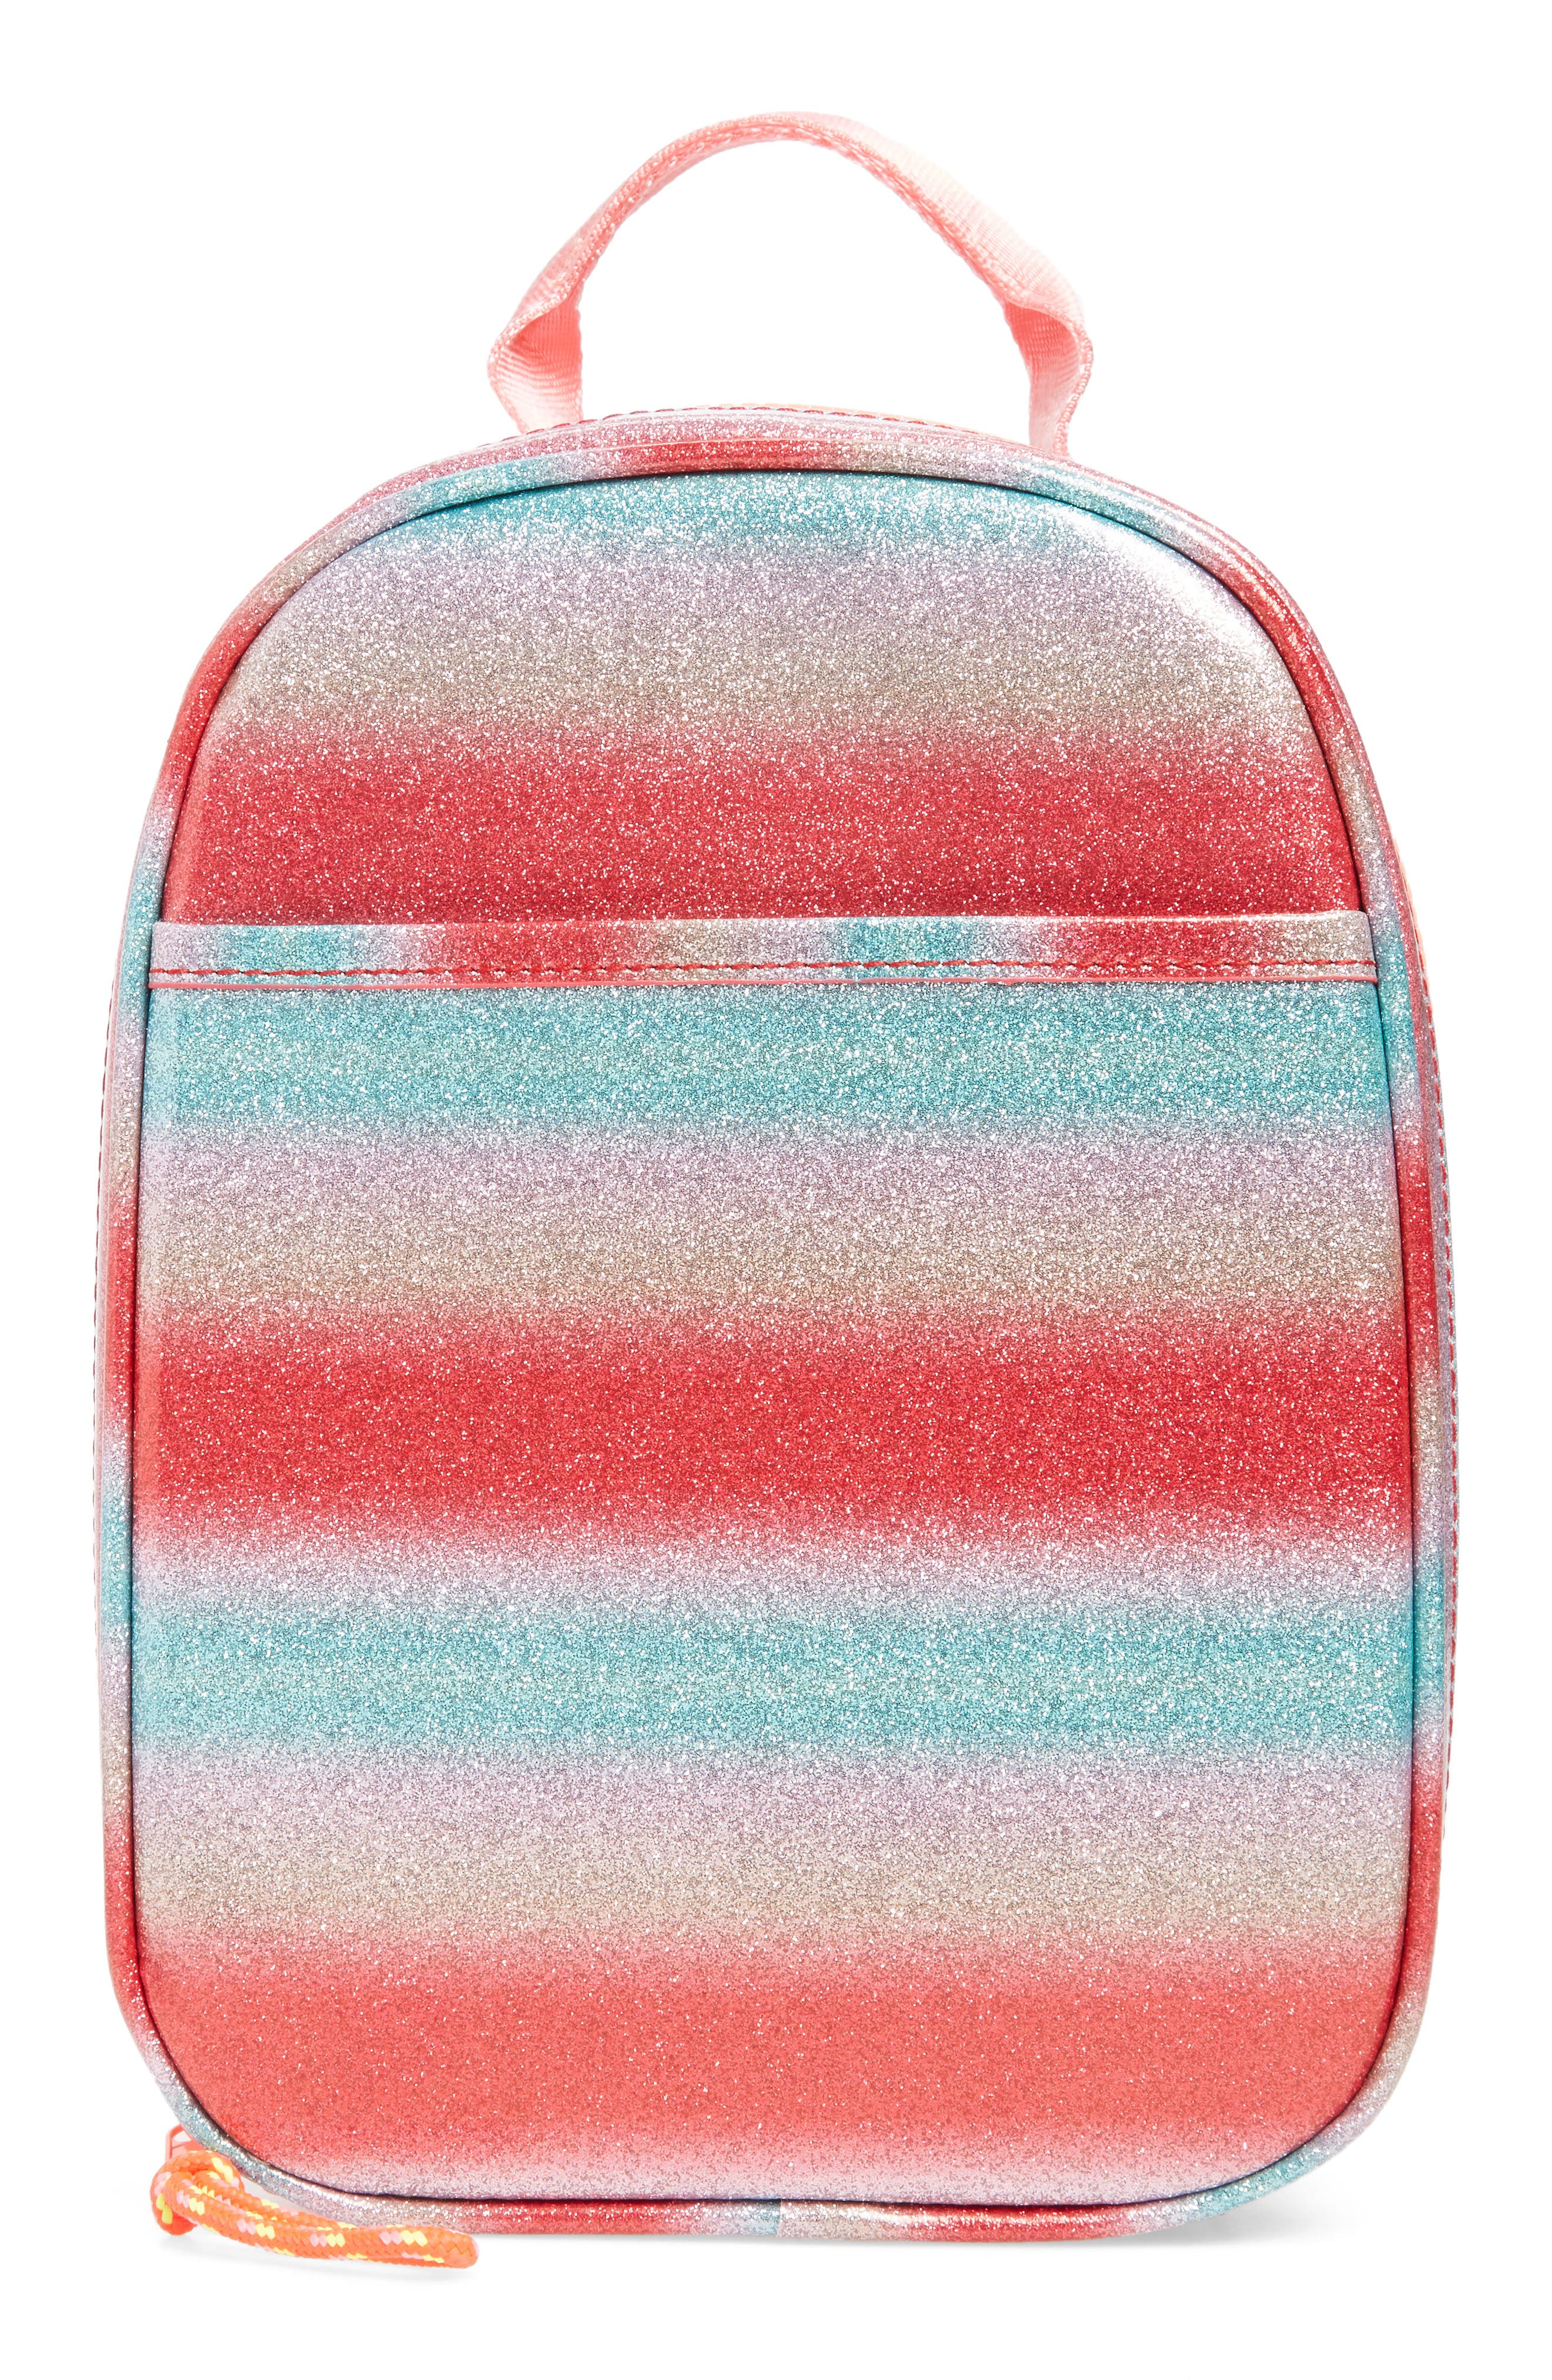 Glitter Stripe Lunch Box,                             Main thumbnail 1, color,                             RAINBOW